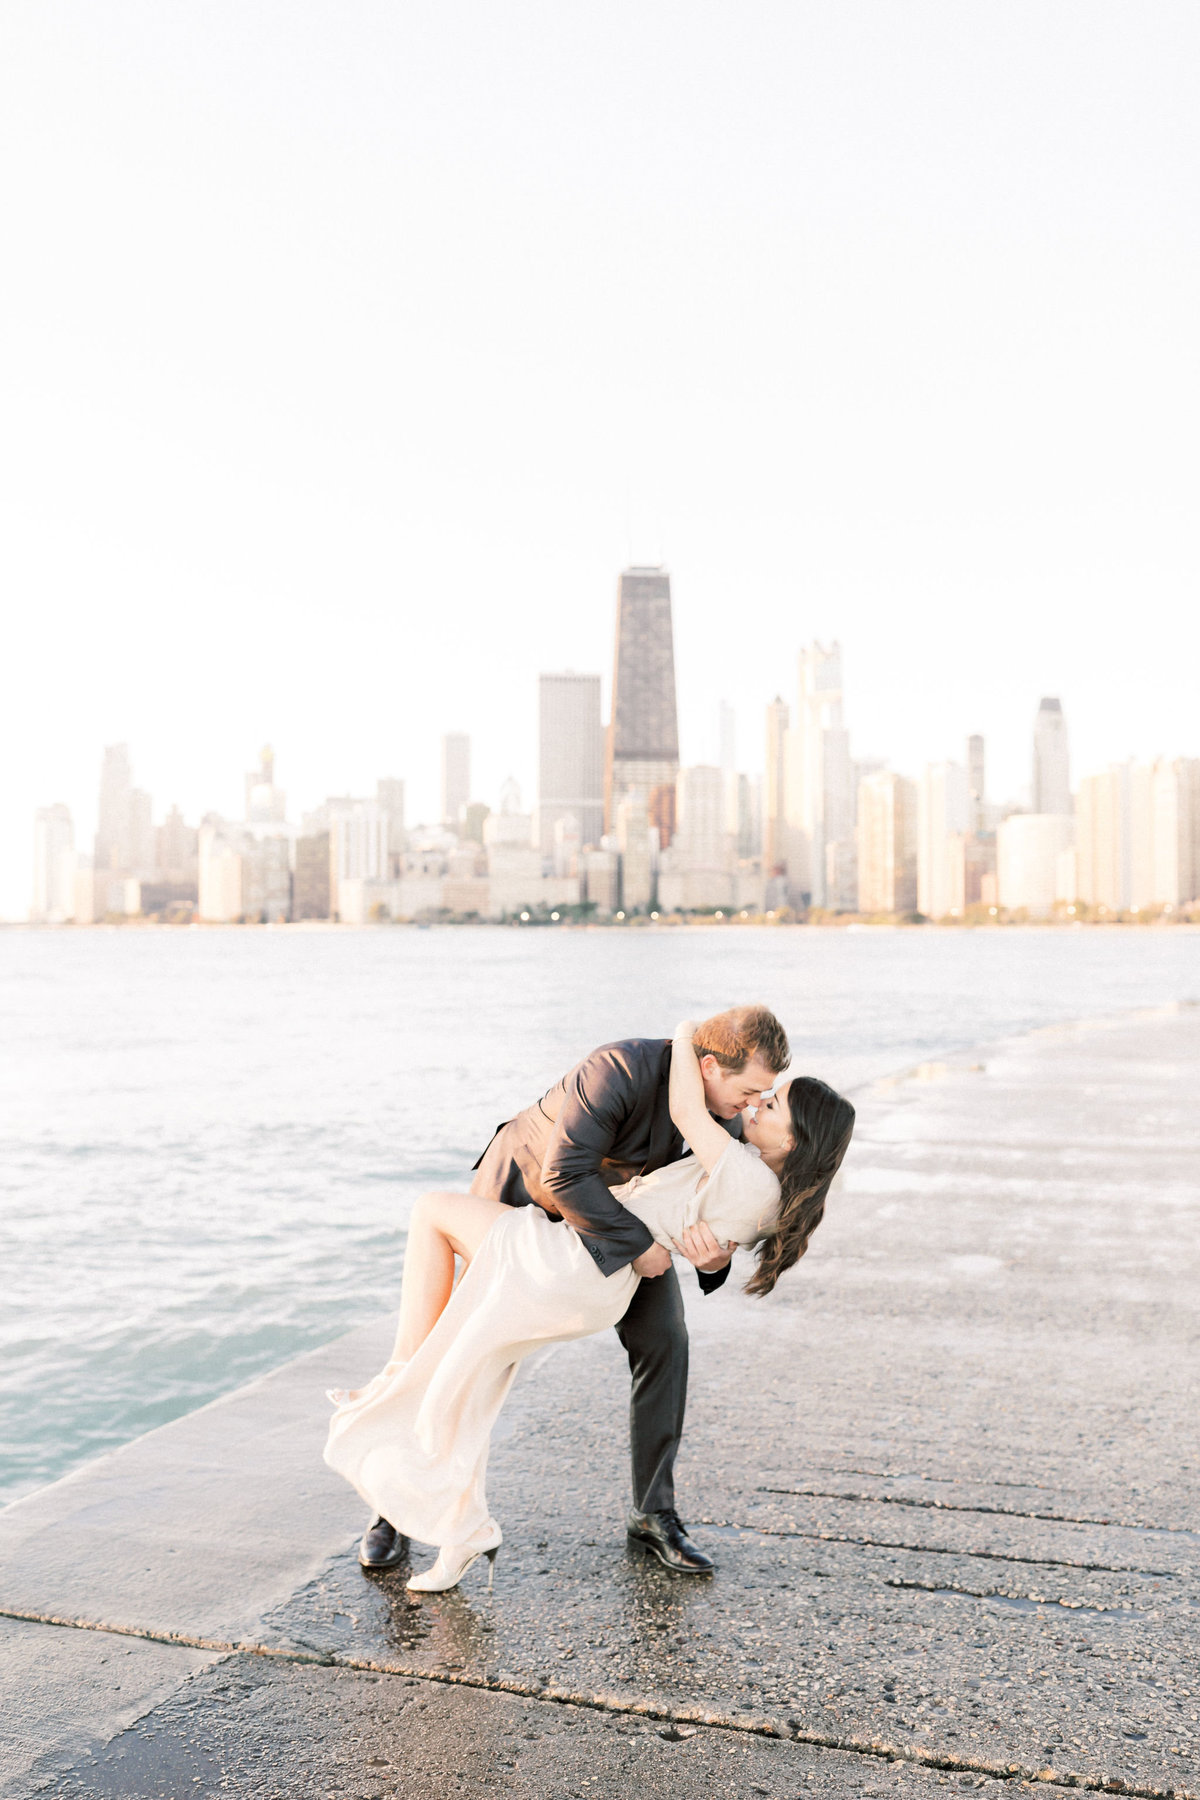 TiffaneyChildsPhotography-ChicagoWeddingPhotographer-Frankie+Brian-NorthAvenueBeach&RiverwalkEngagementSession-30